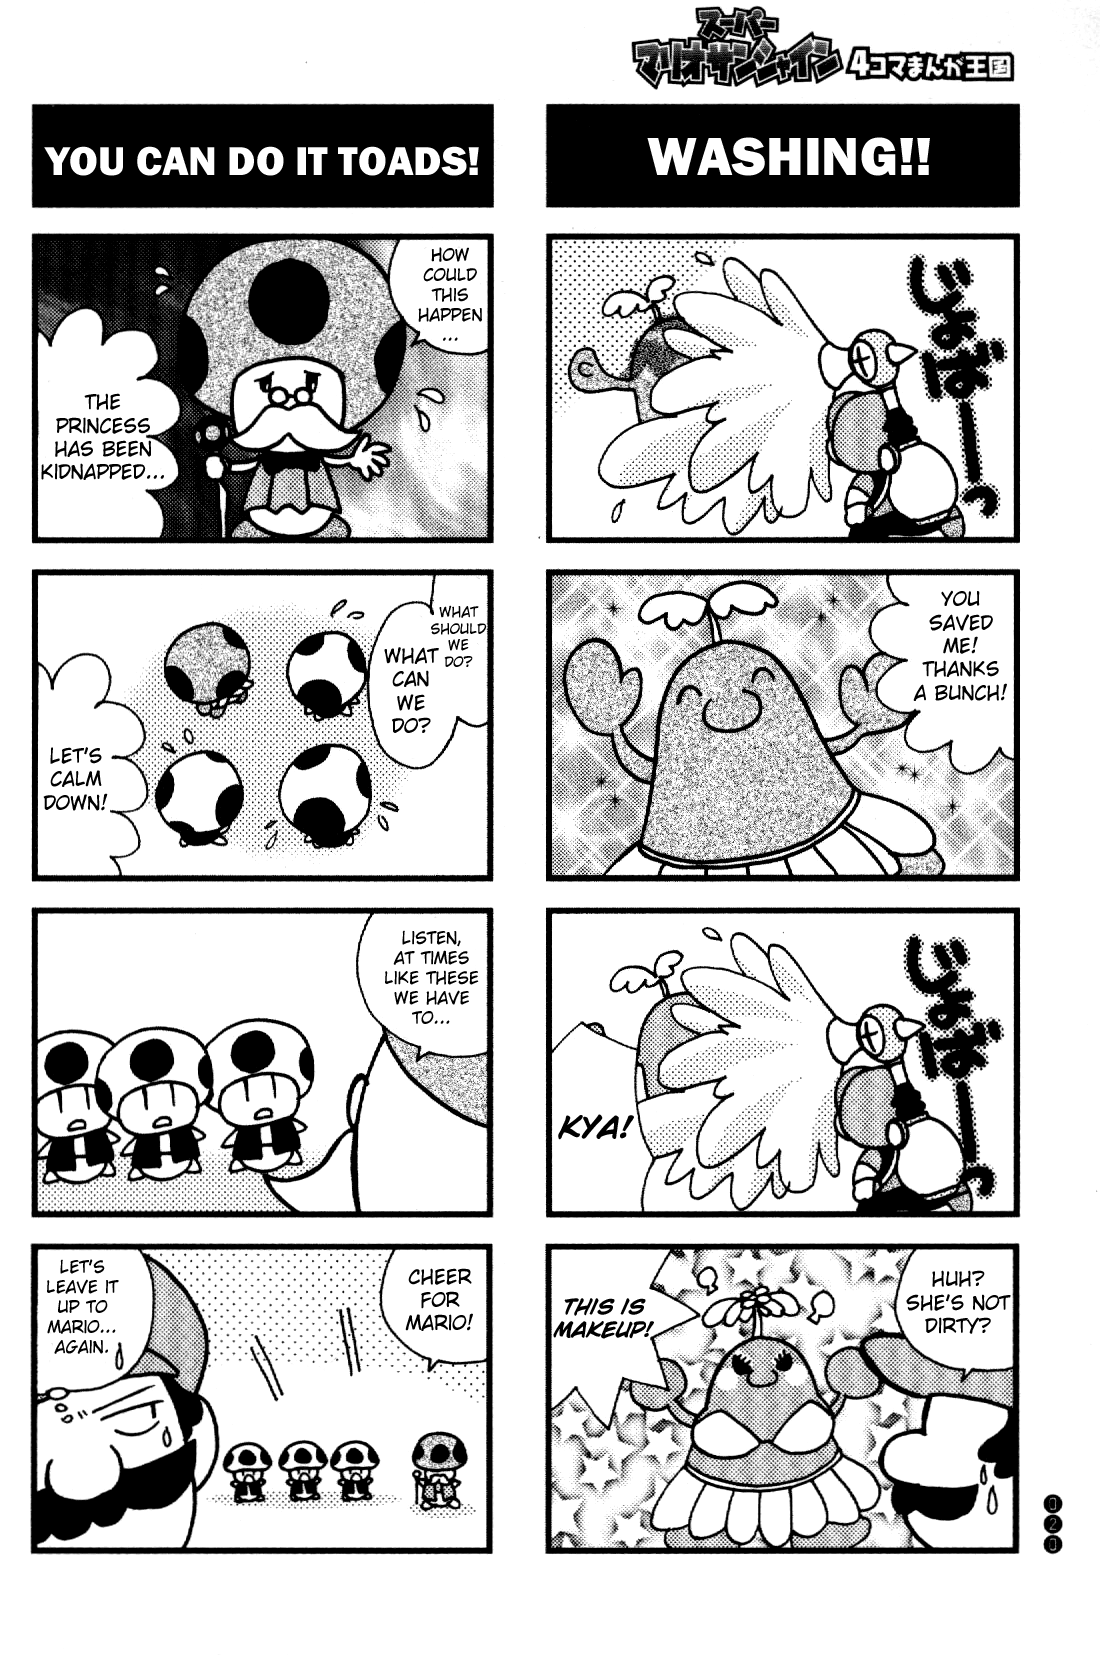 Gaffer Mario Full knowledge 4koma Manga Lands - faithfulness 2